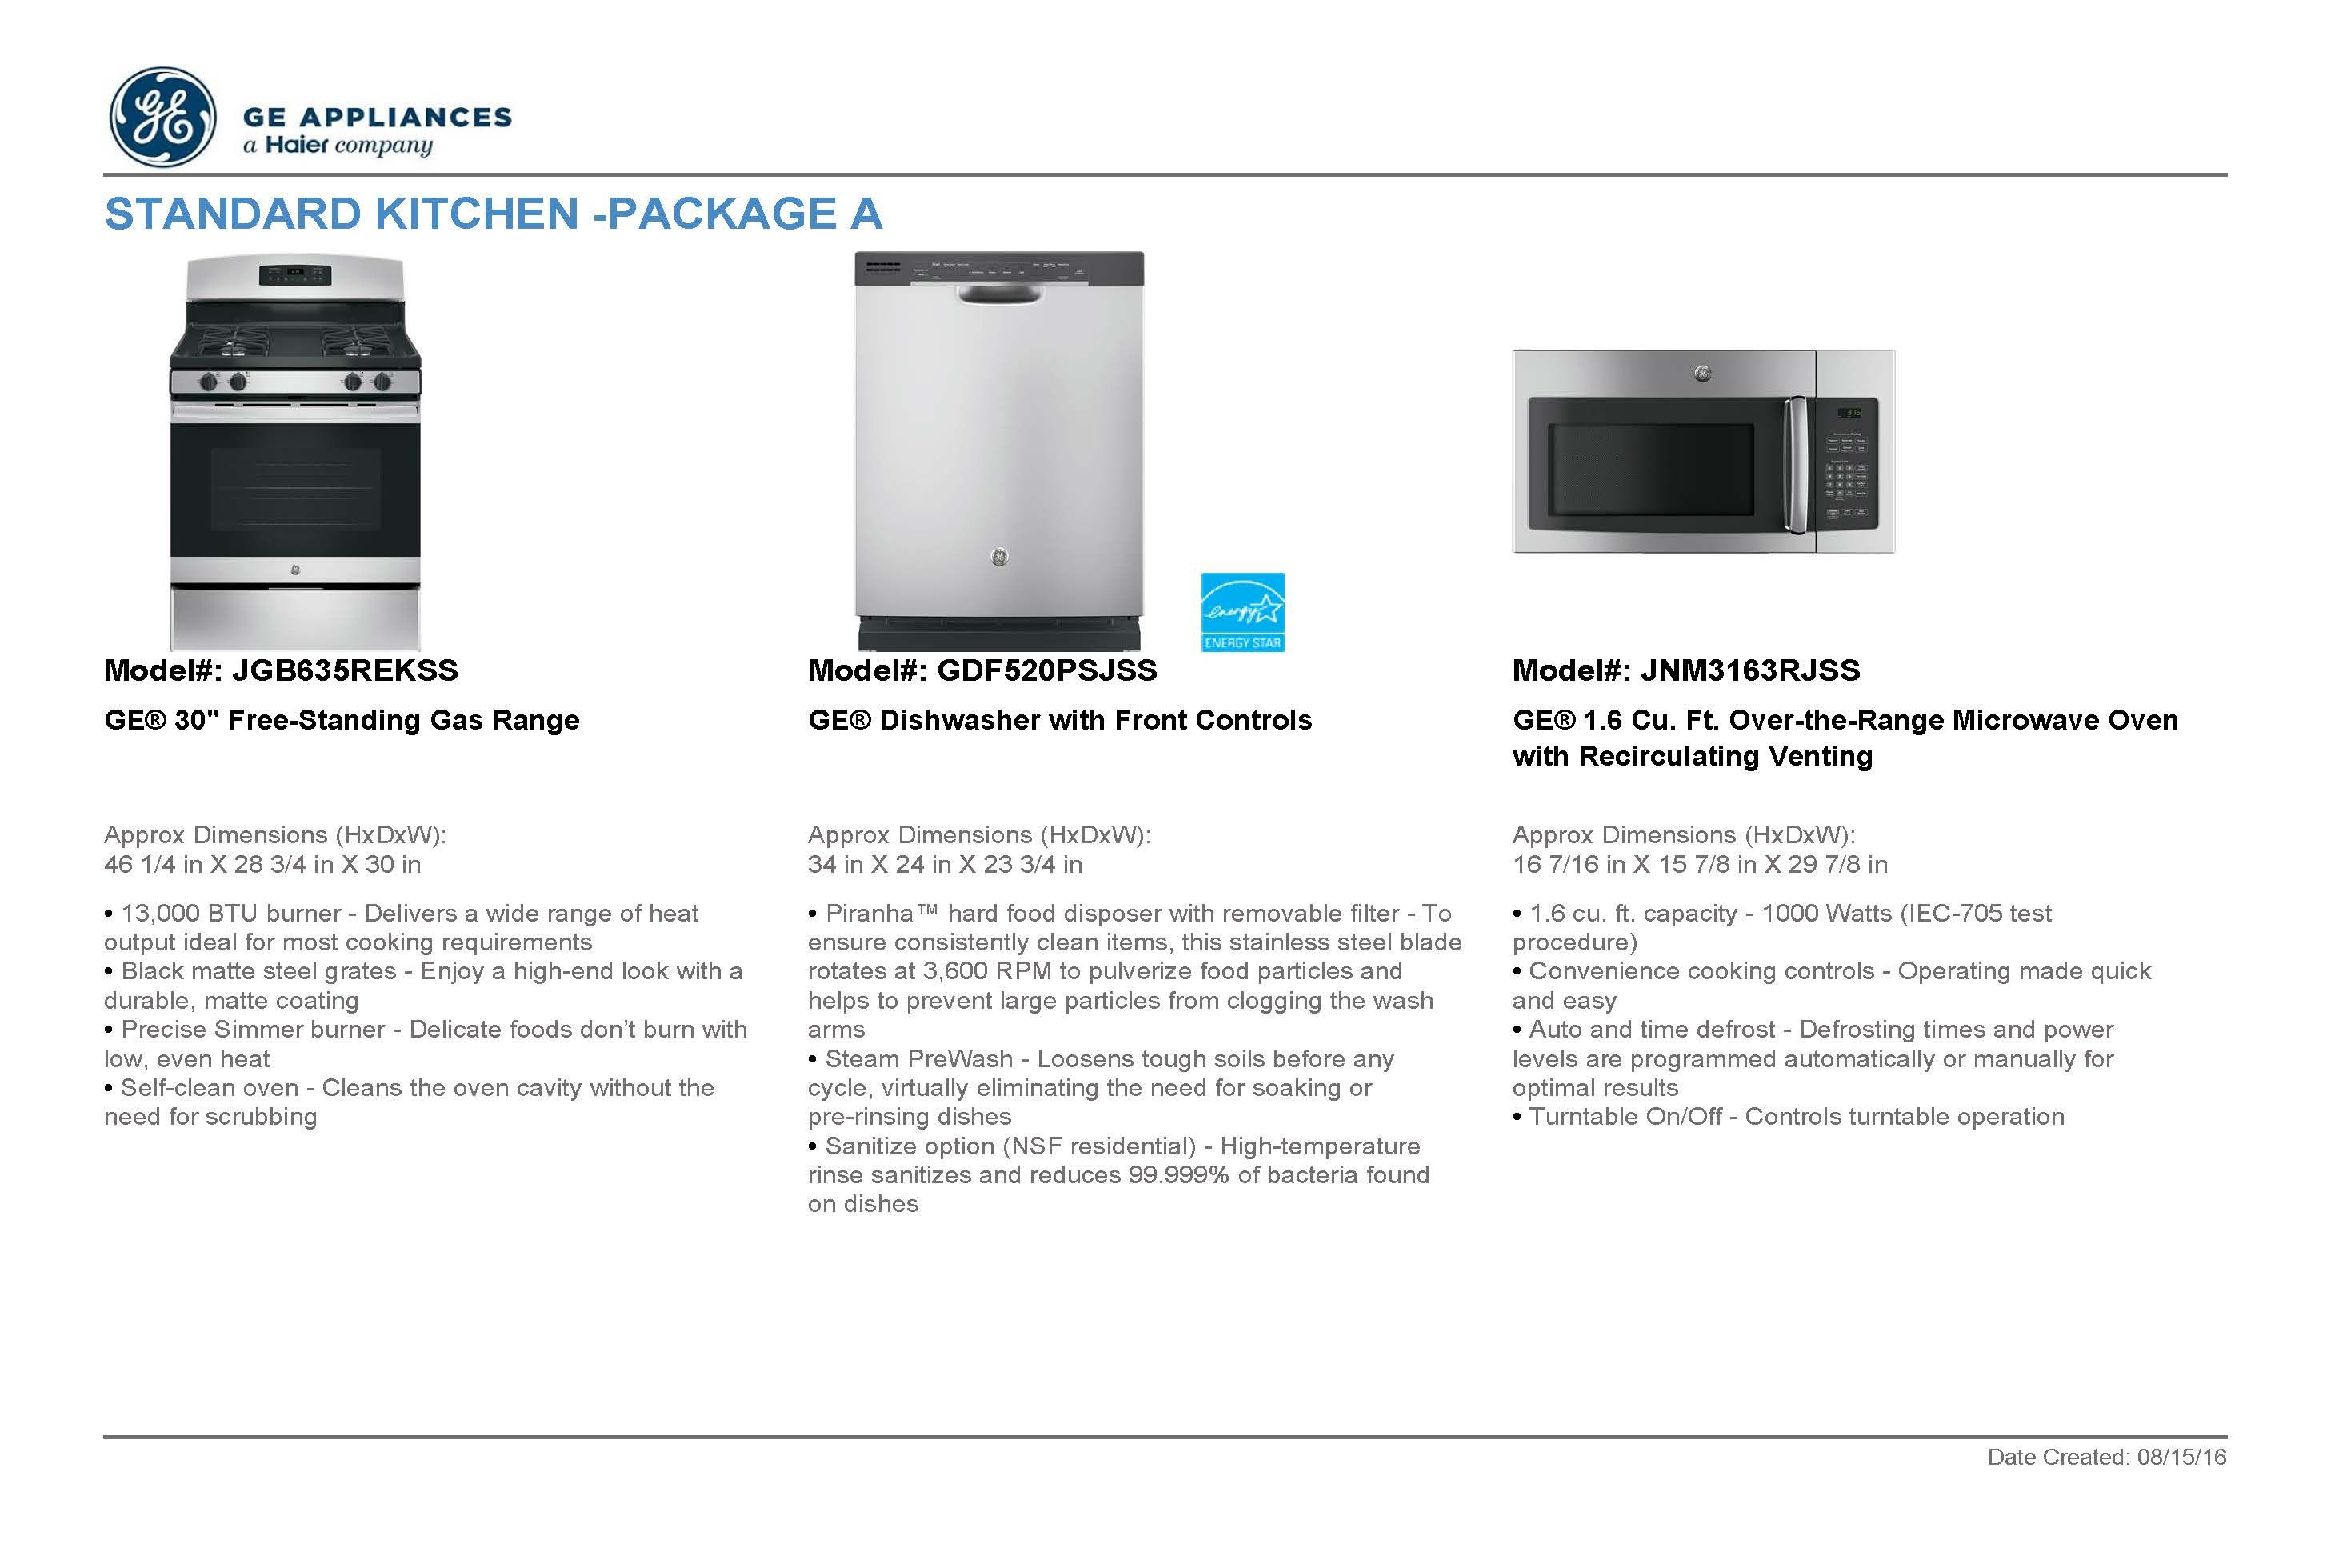 Standard kitchen appliances package a stainless steel standard standard kitchen appliances package a stainless steel standard package for serenade upgrade publicscrutiny Gallery